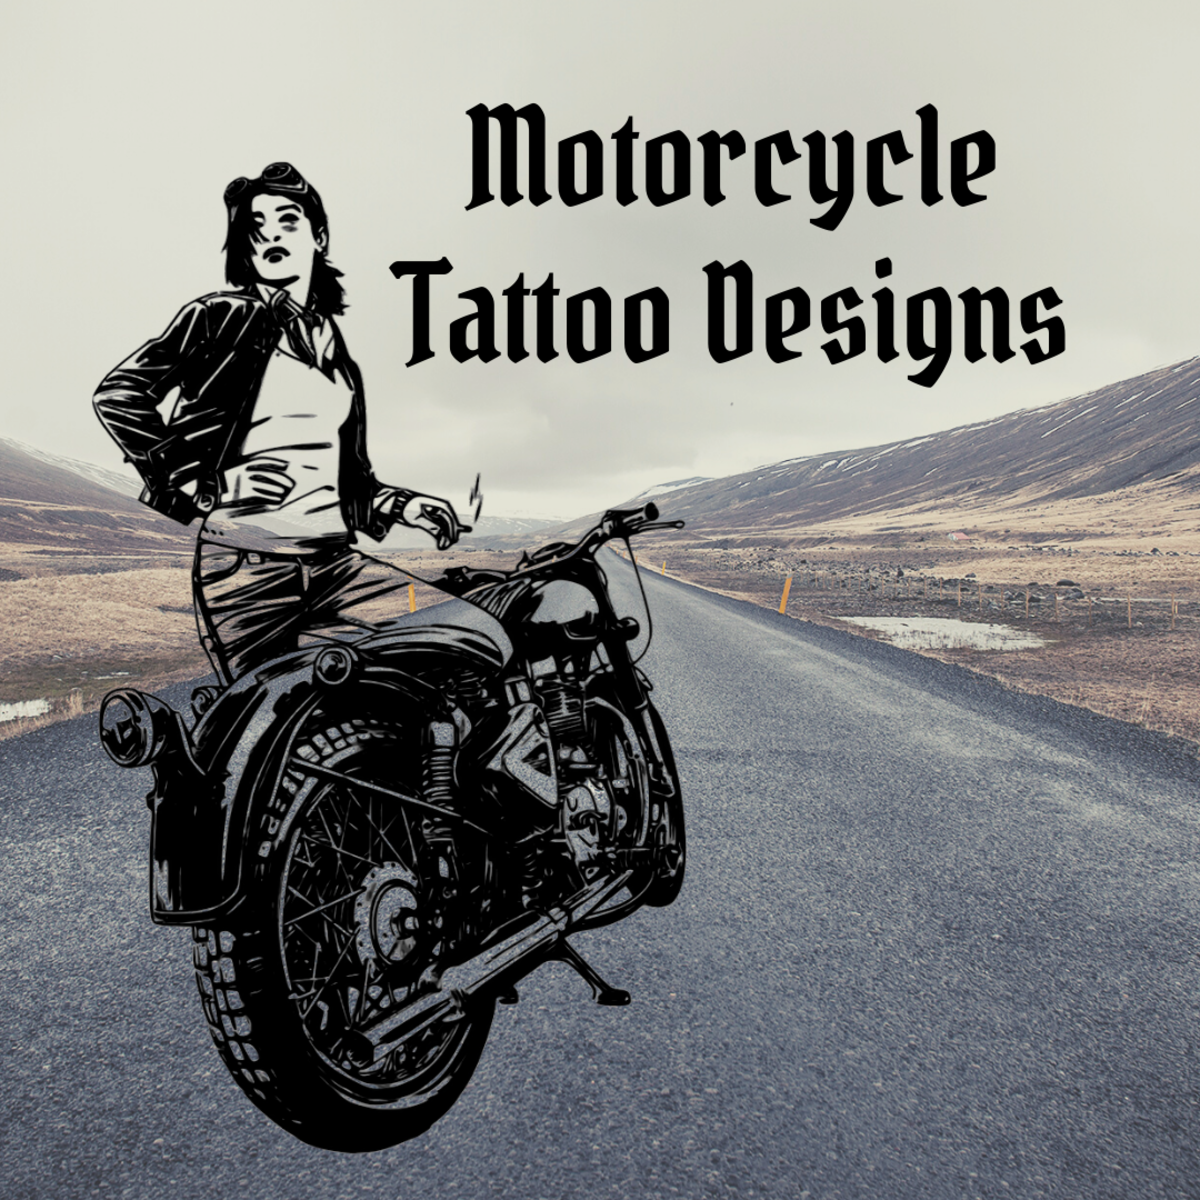 Motorcycle Biker Tattoo Ideas: Ghost Riders and More